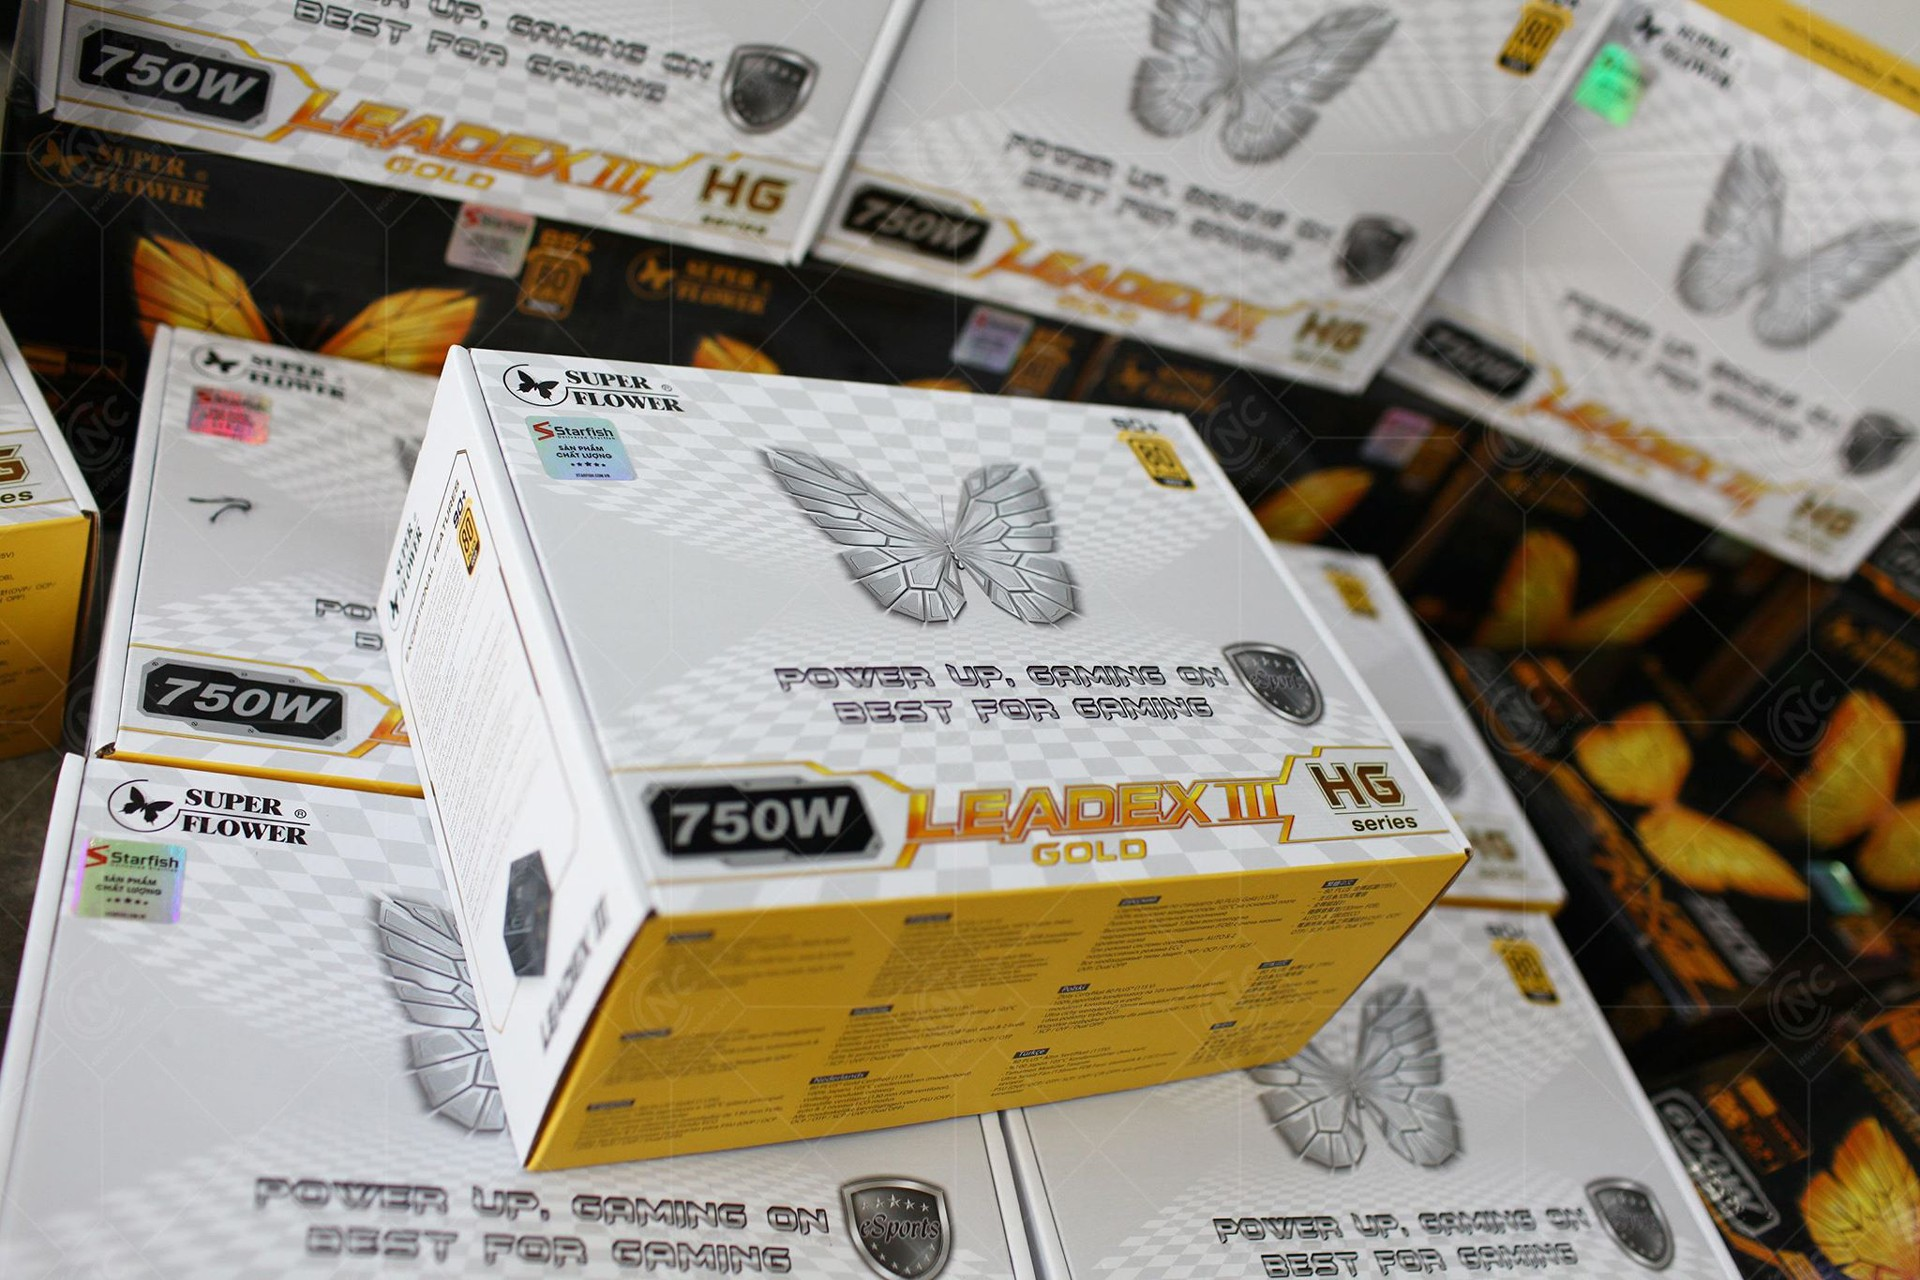 nguon super flower leadex iii 750w